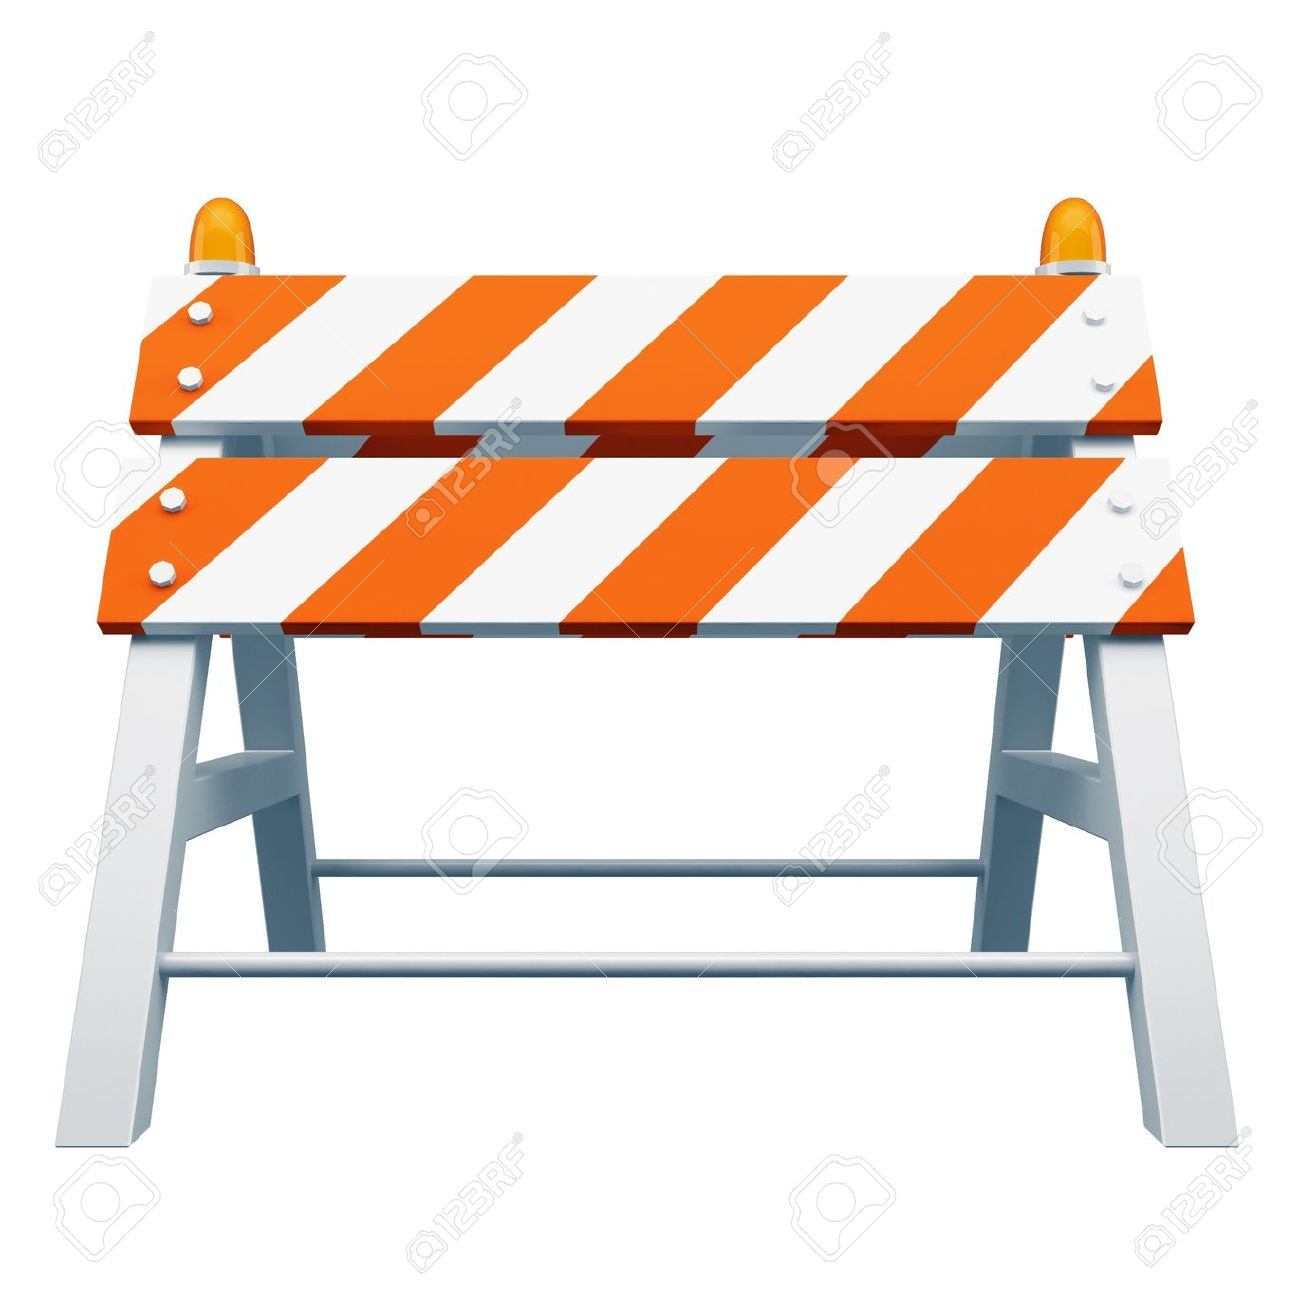 2,327 Traffic Barricade Cliparts, Stock Vector And Royalty Free.